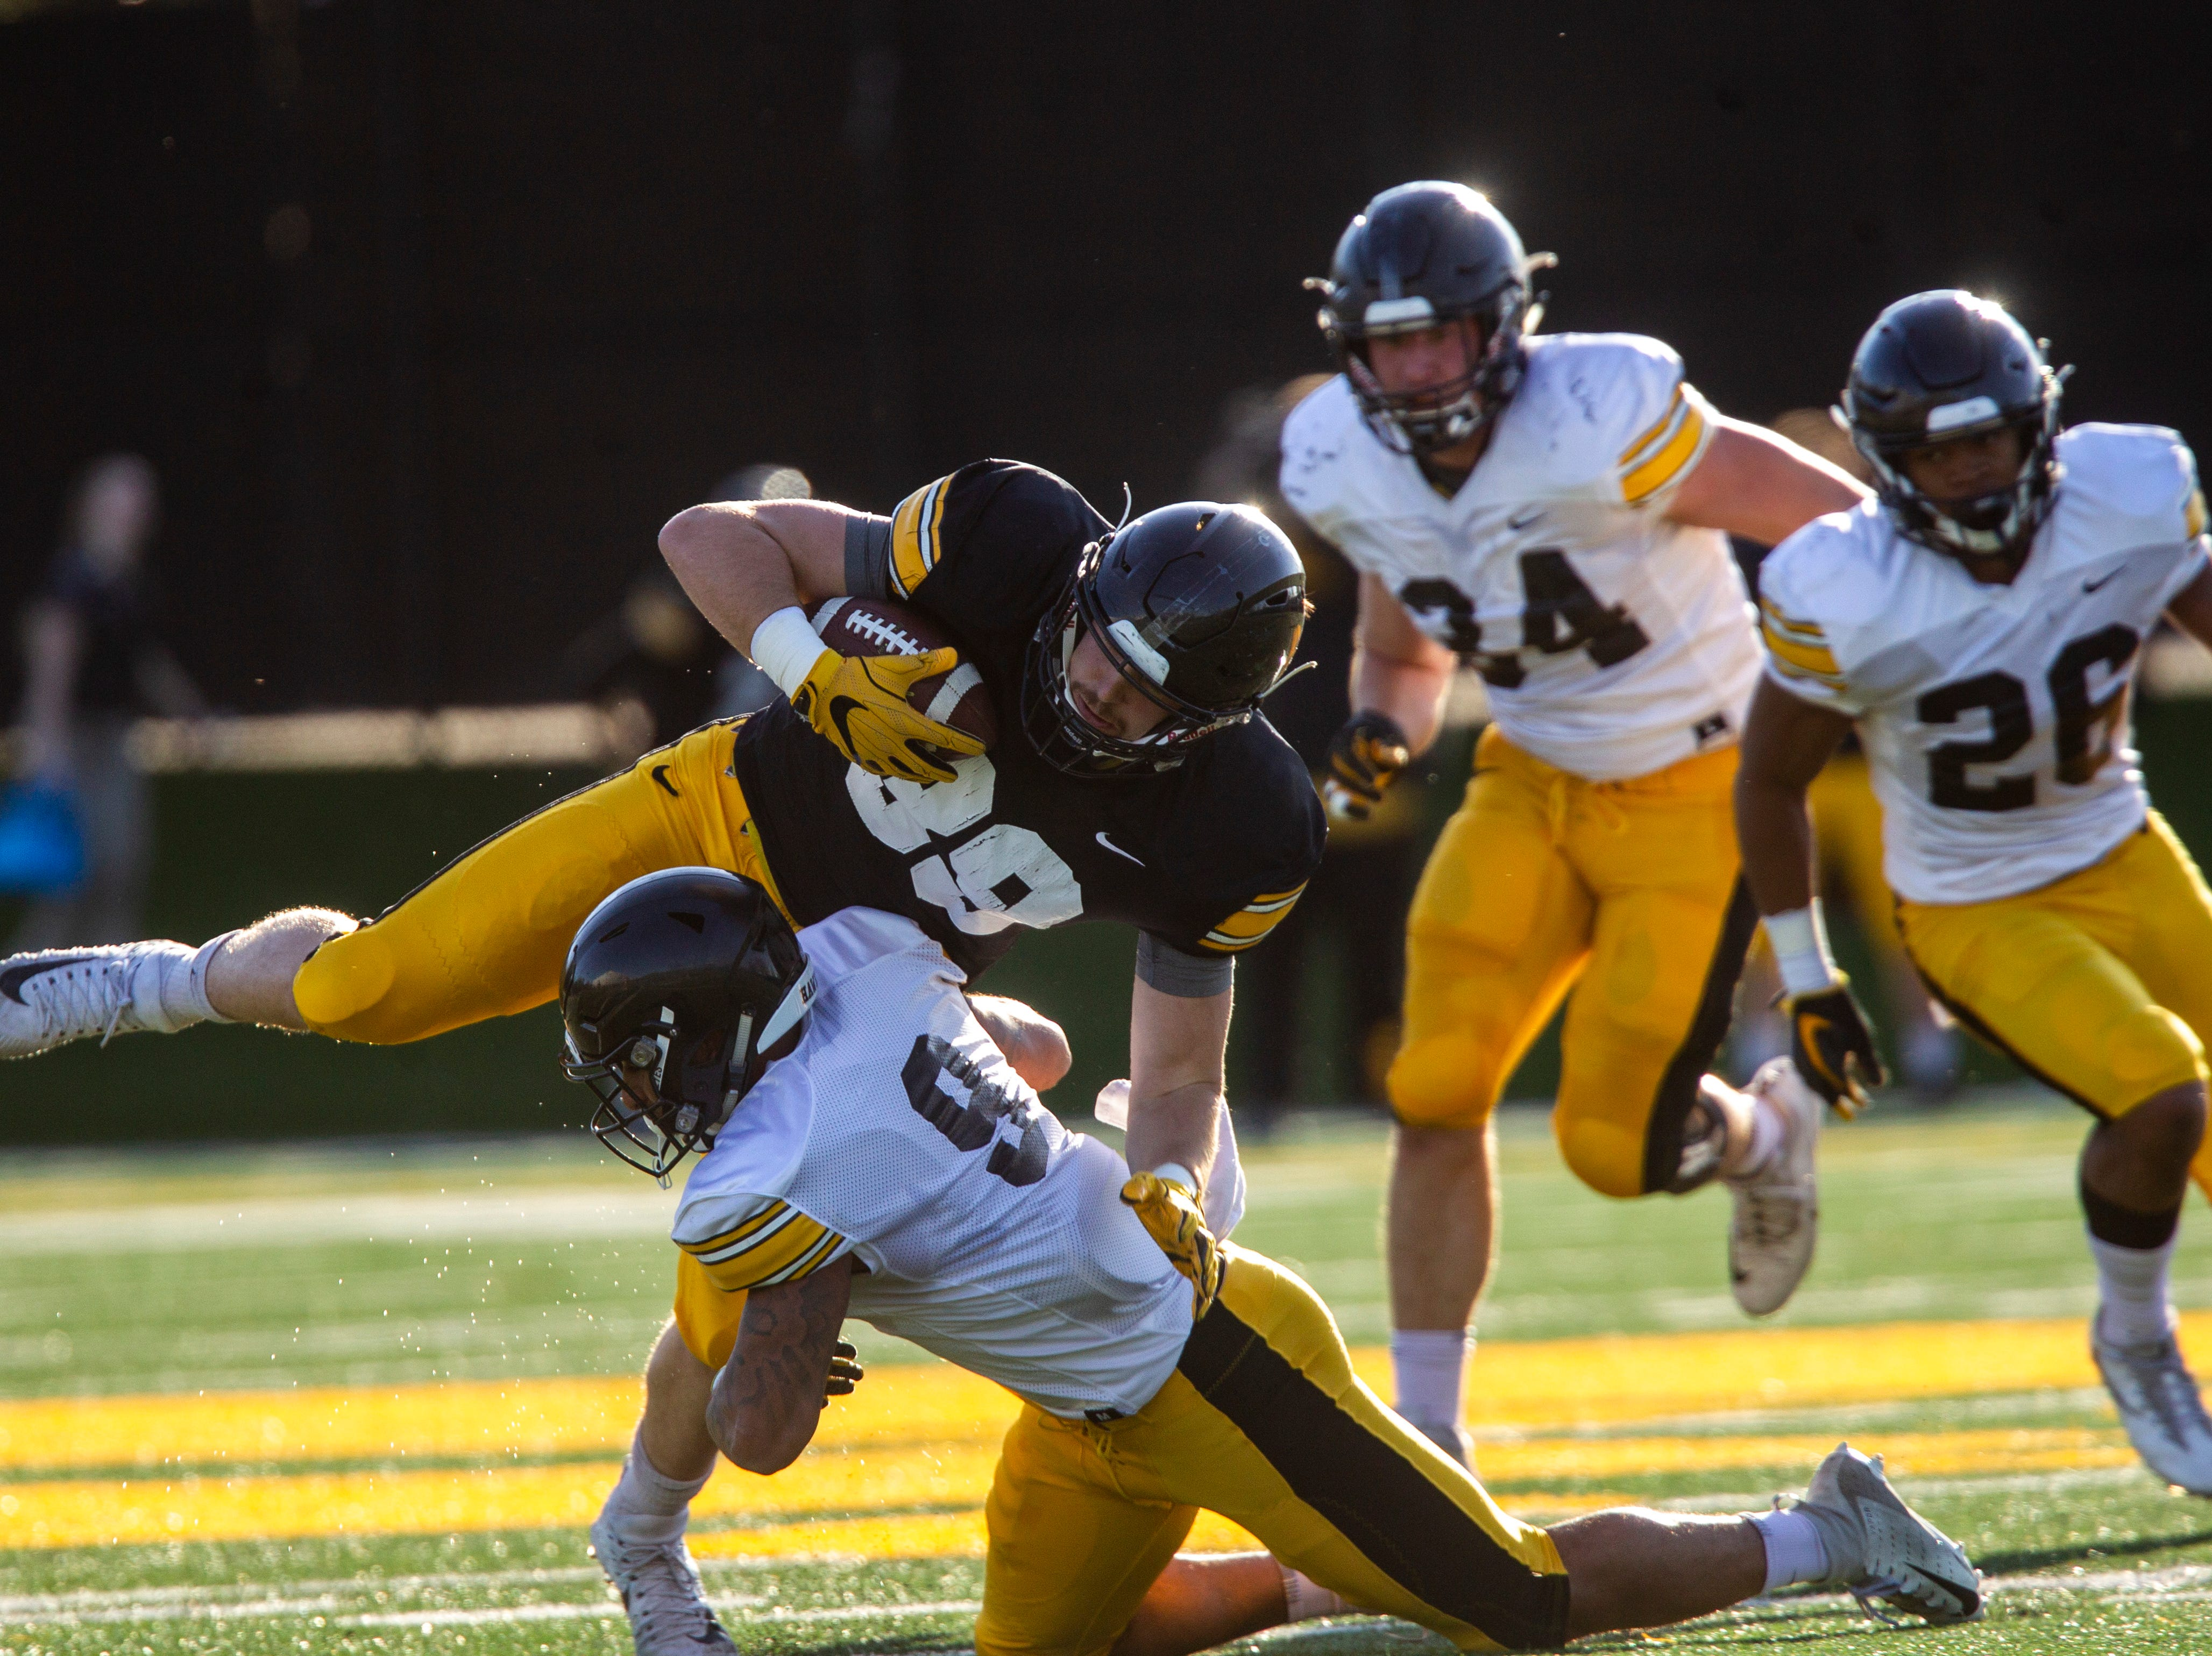 Iowa wide receiver Nico Ragaini (89) gets tackled by Geno Stone (9) during the final spring football practice, Friday, April 26, 2019, at the University of Iowa outdoor practice facility in Iowa City, Iowa.